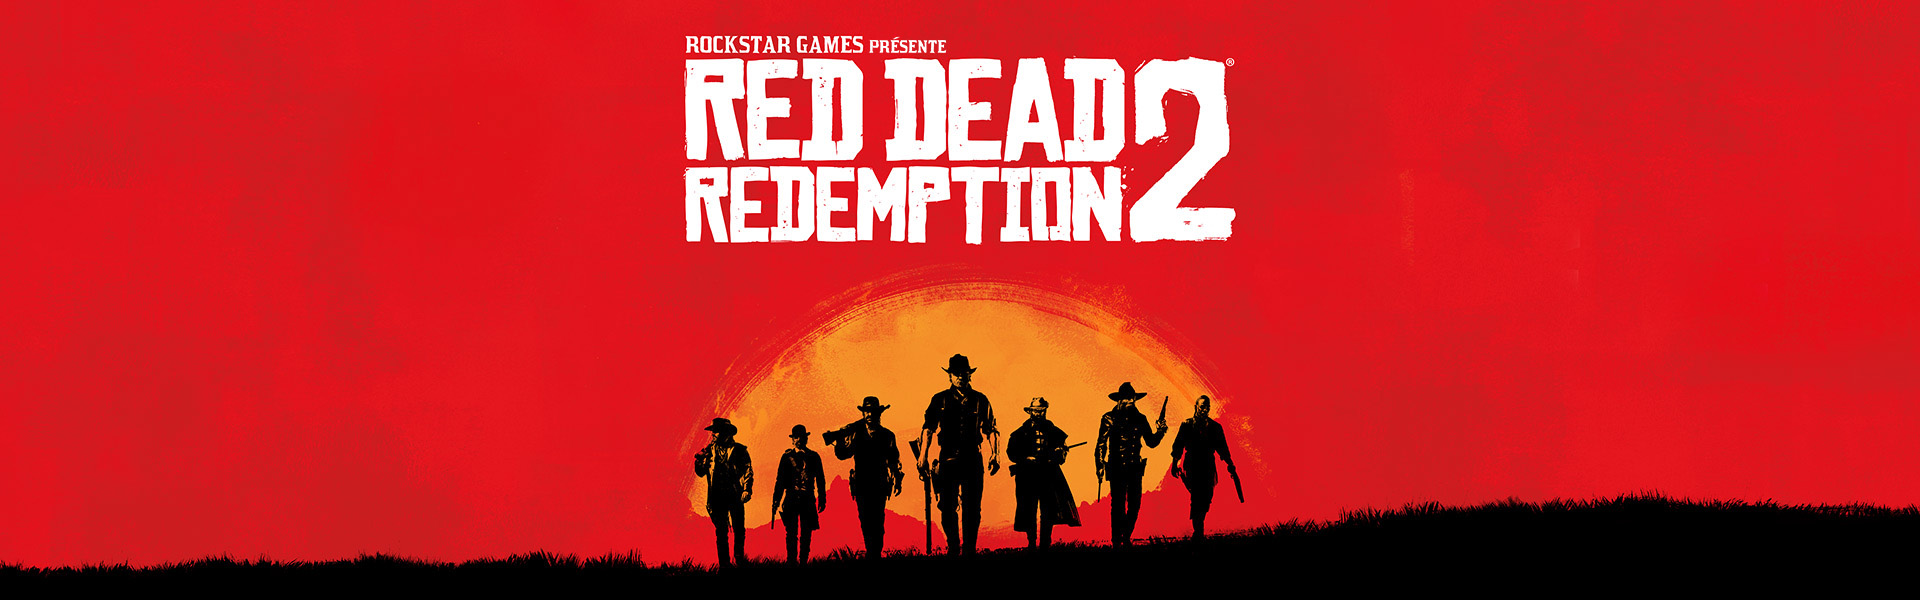 Héro Red Dead Redemption 2